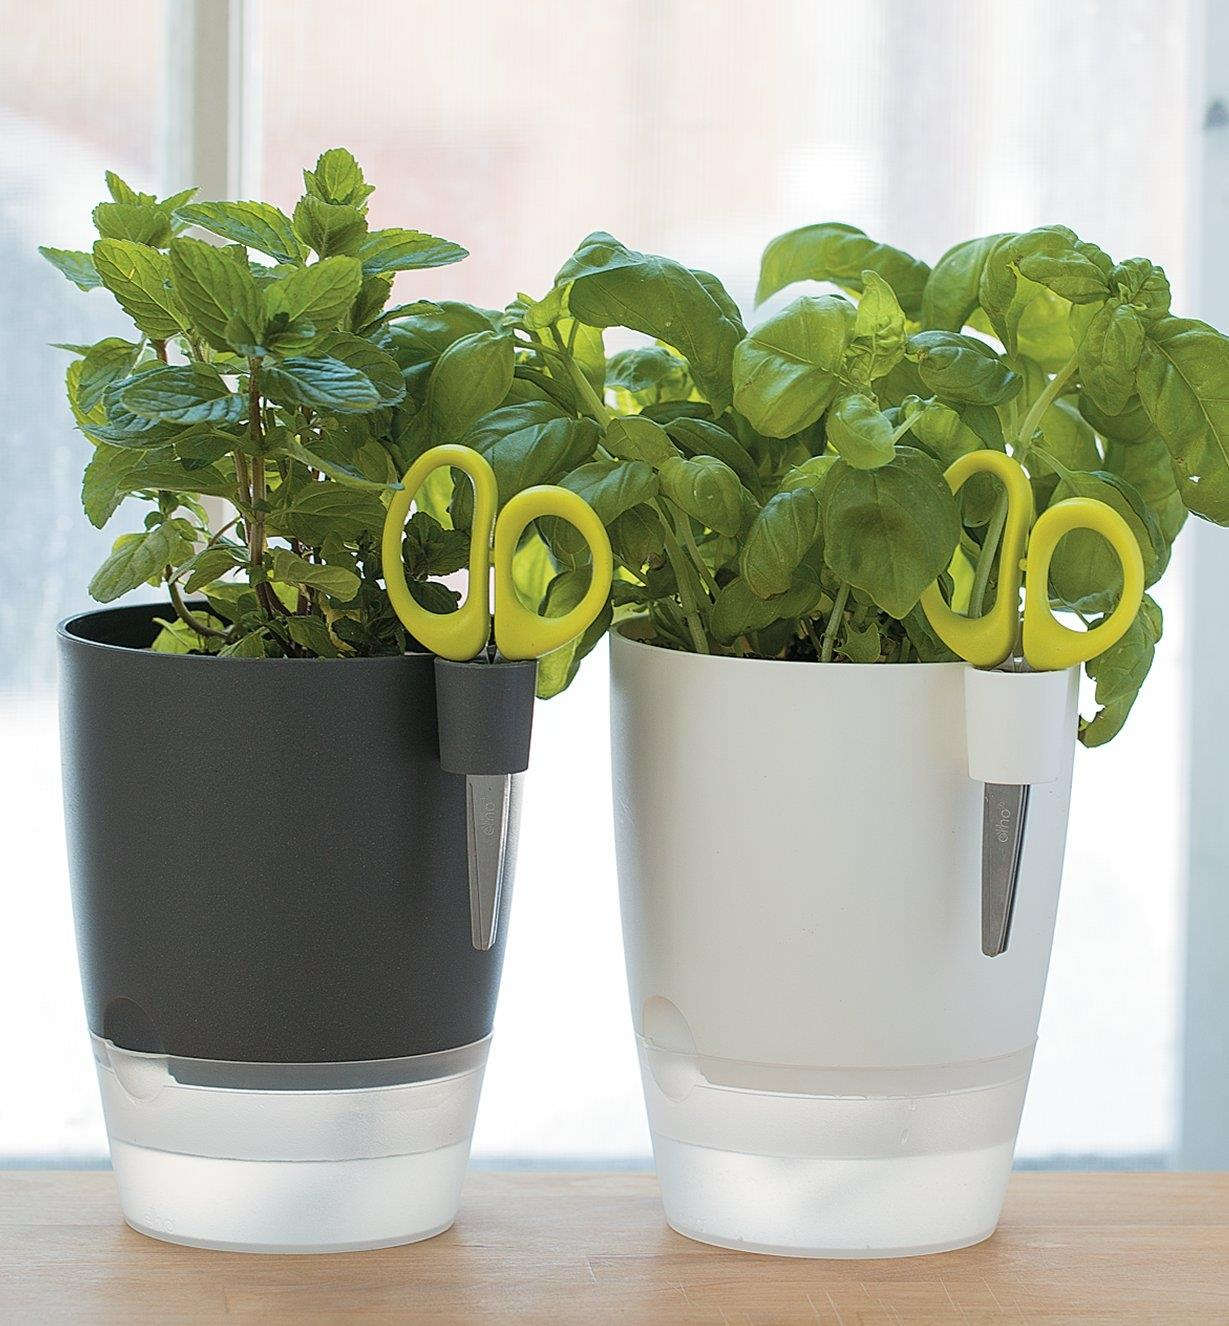 Elho Windowsill Herb Pot